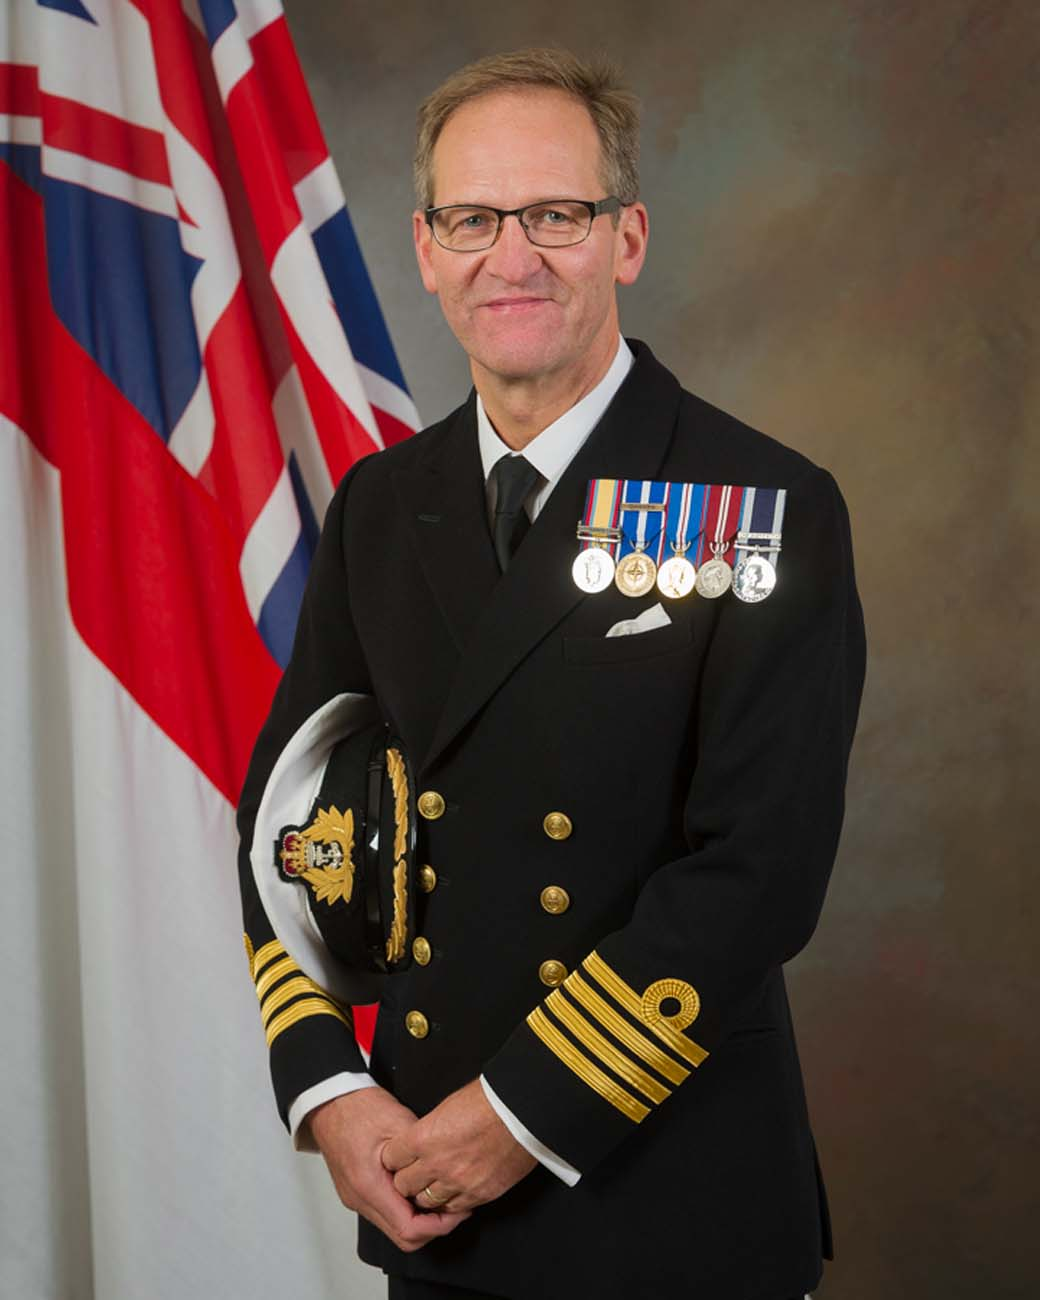 HMS Collingwood welcomes new Commanding Officer | Royal Navy